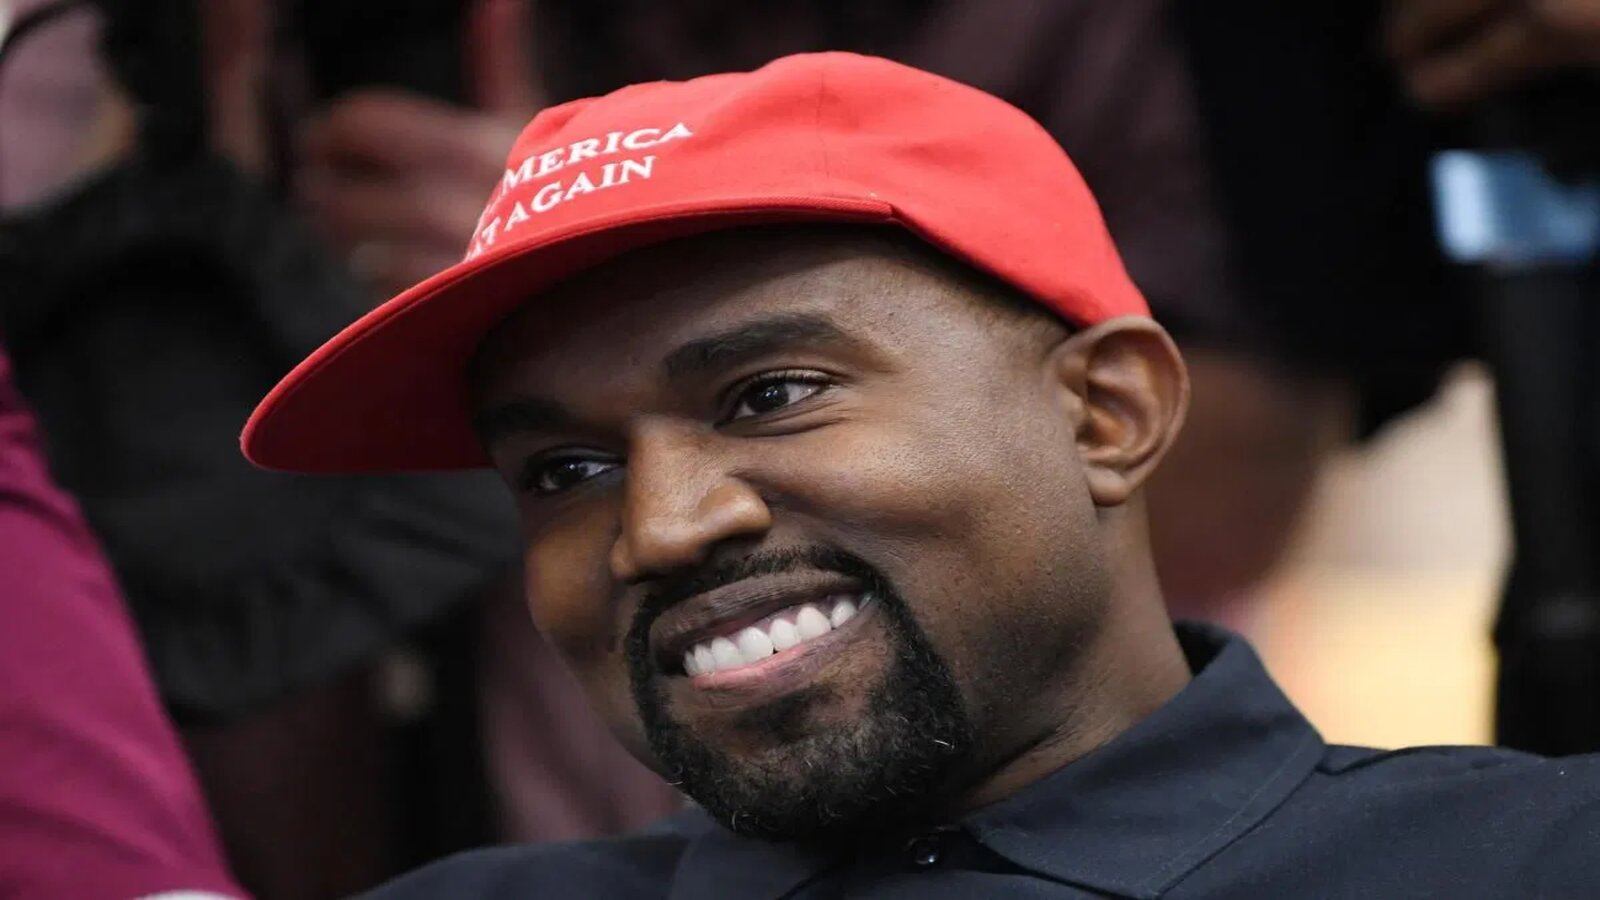 Kanye 2020 throws Twittersphere into tailspin as they imagine possible First Lady Kim Kardashian